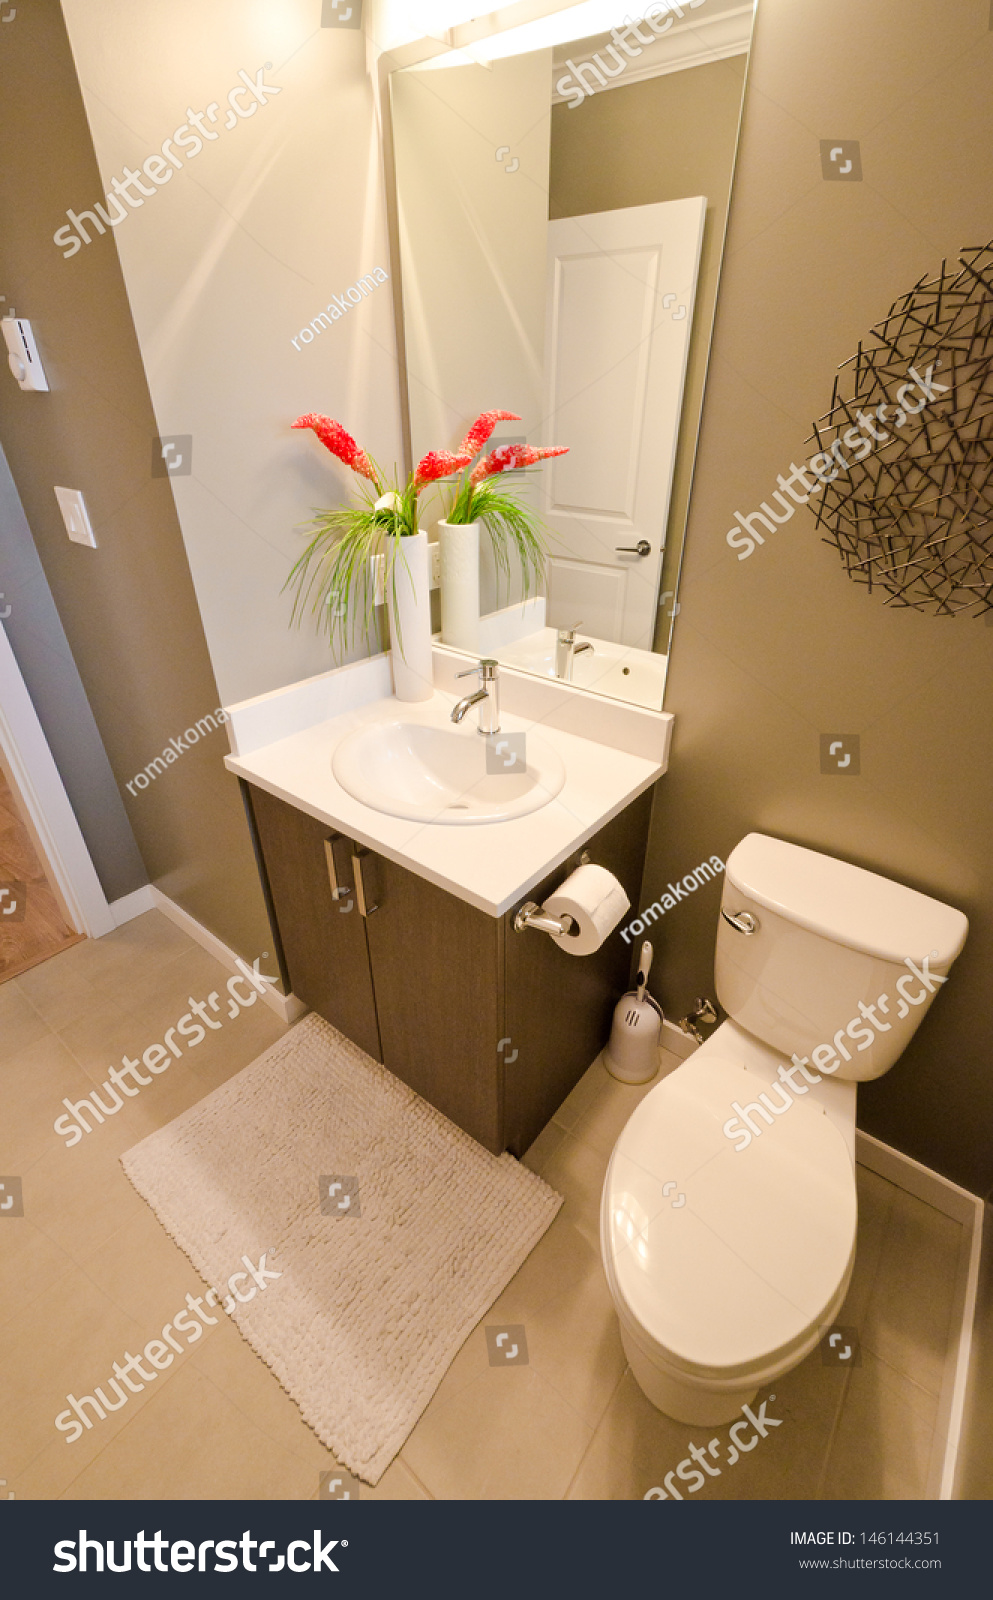 Nicely Decorated Modern Washroom With The Washbasin (Sink), Toilet And Vase With Some Flowers. Interior Design. Vertical. Stock Photo 146144351 ...